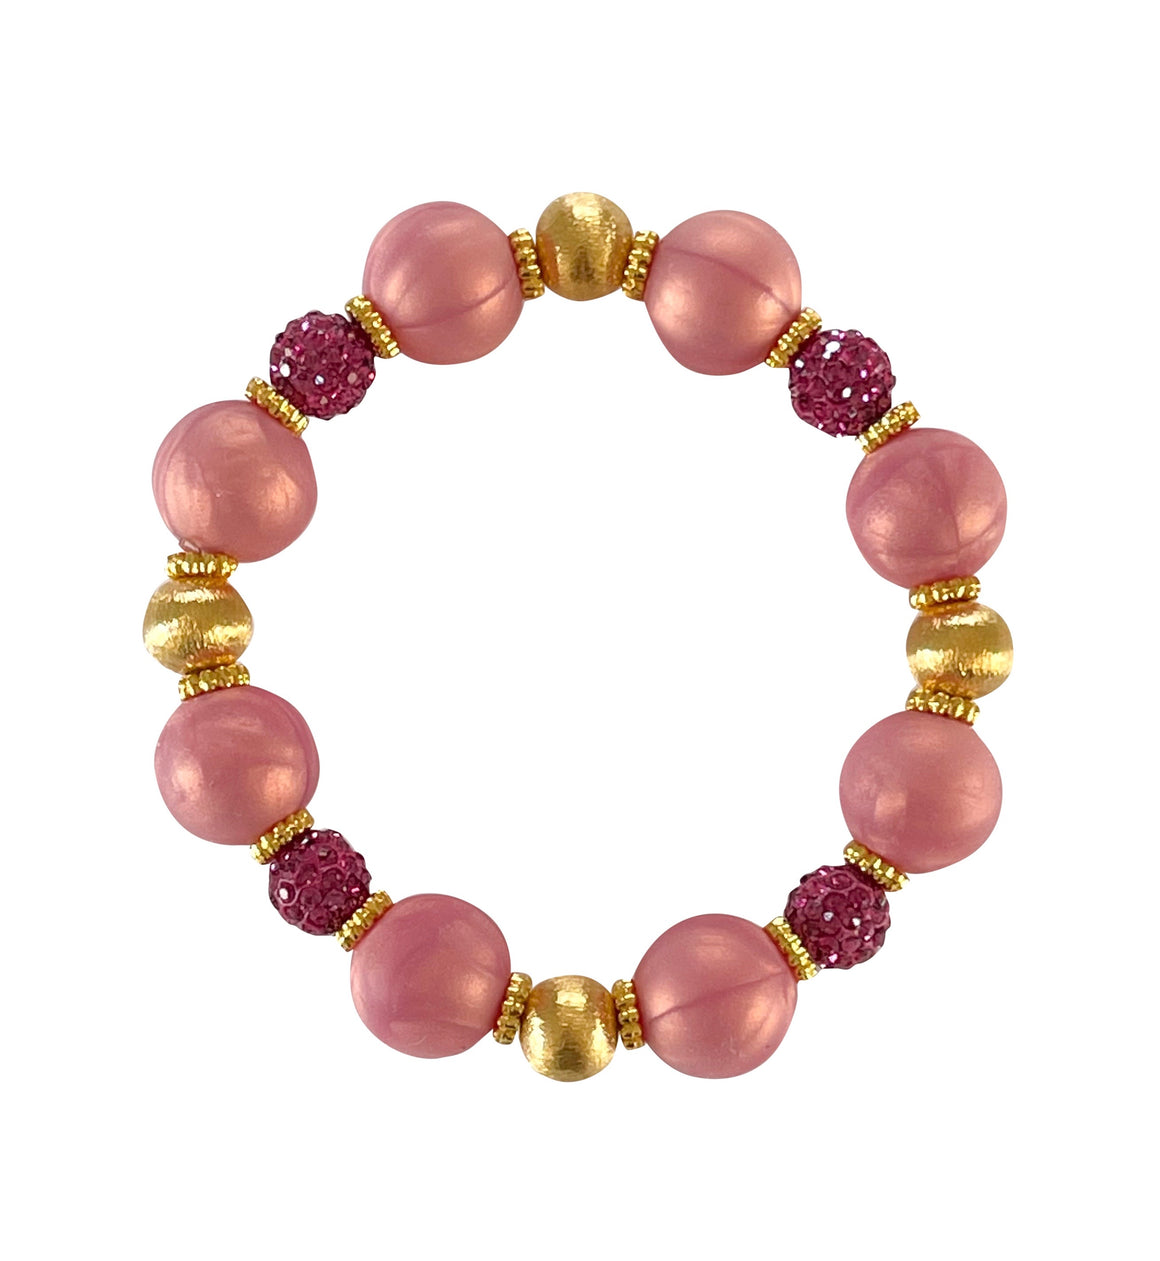 SPRING BANGLE IN ROSE AND FUSCHIA